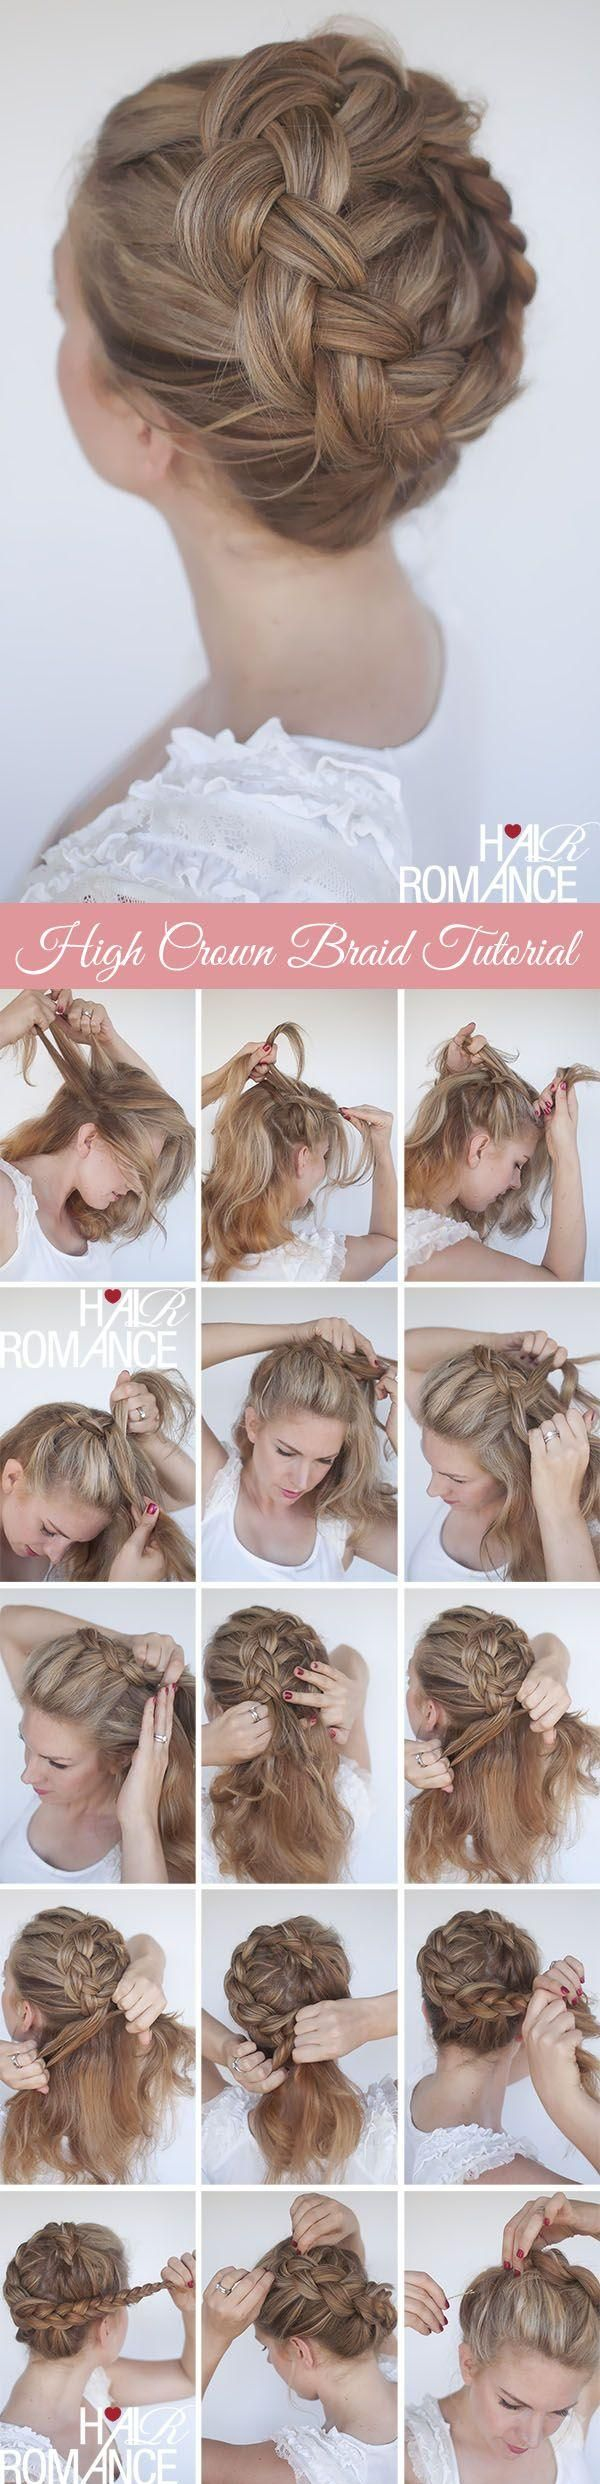 high crown braid - requires a big of practice